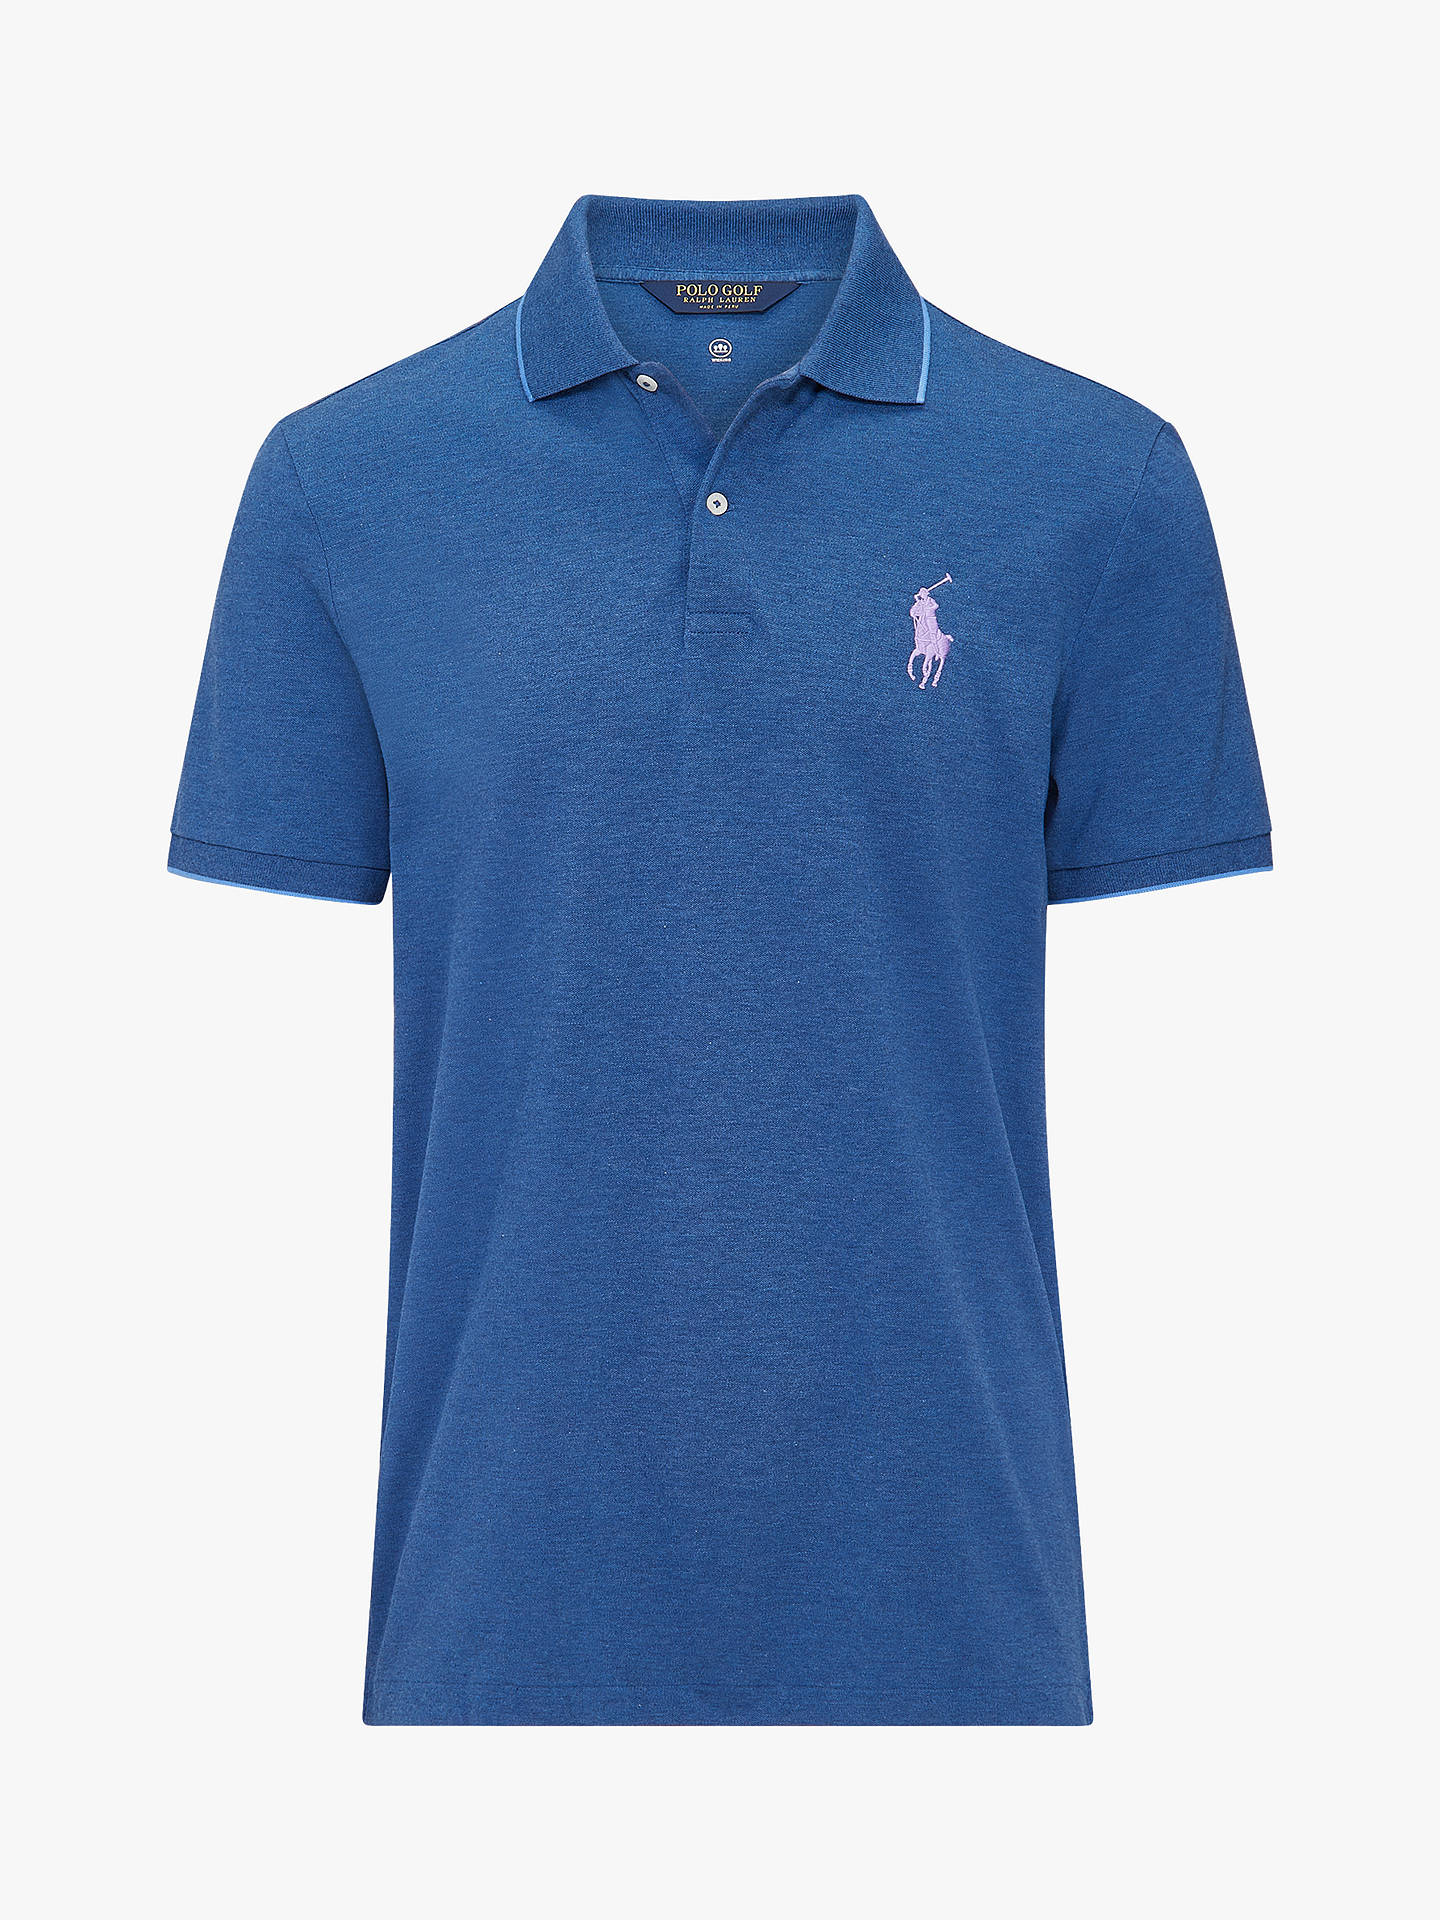 5a172fdab Polo Golf by Ralph Lauren Custom Slim Fit Performance Polo Shirt ...